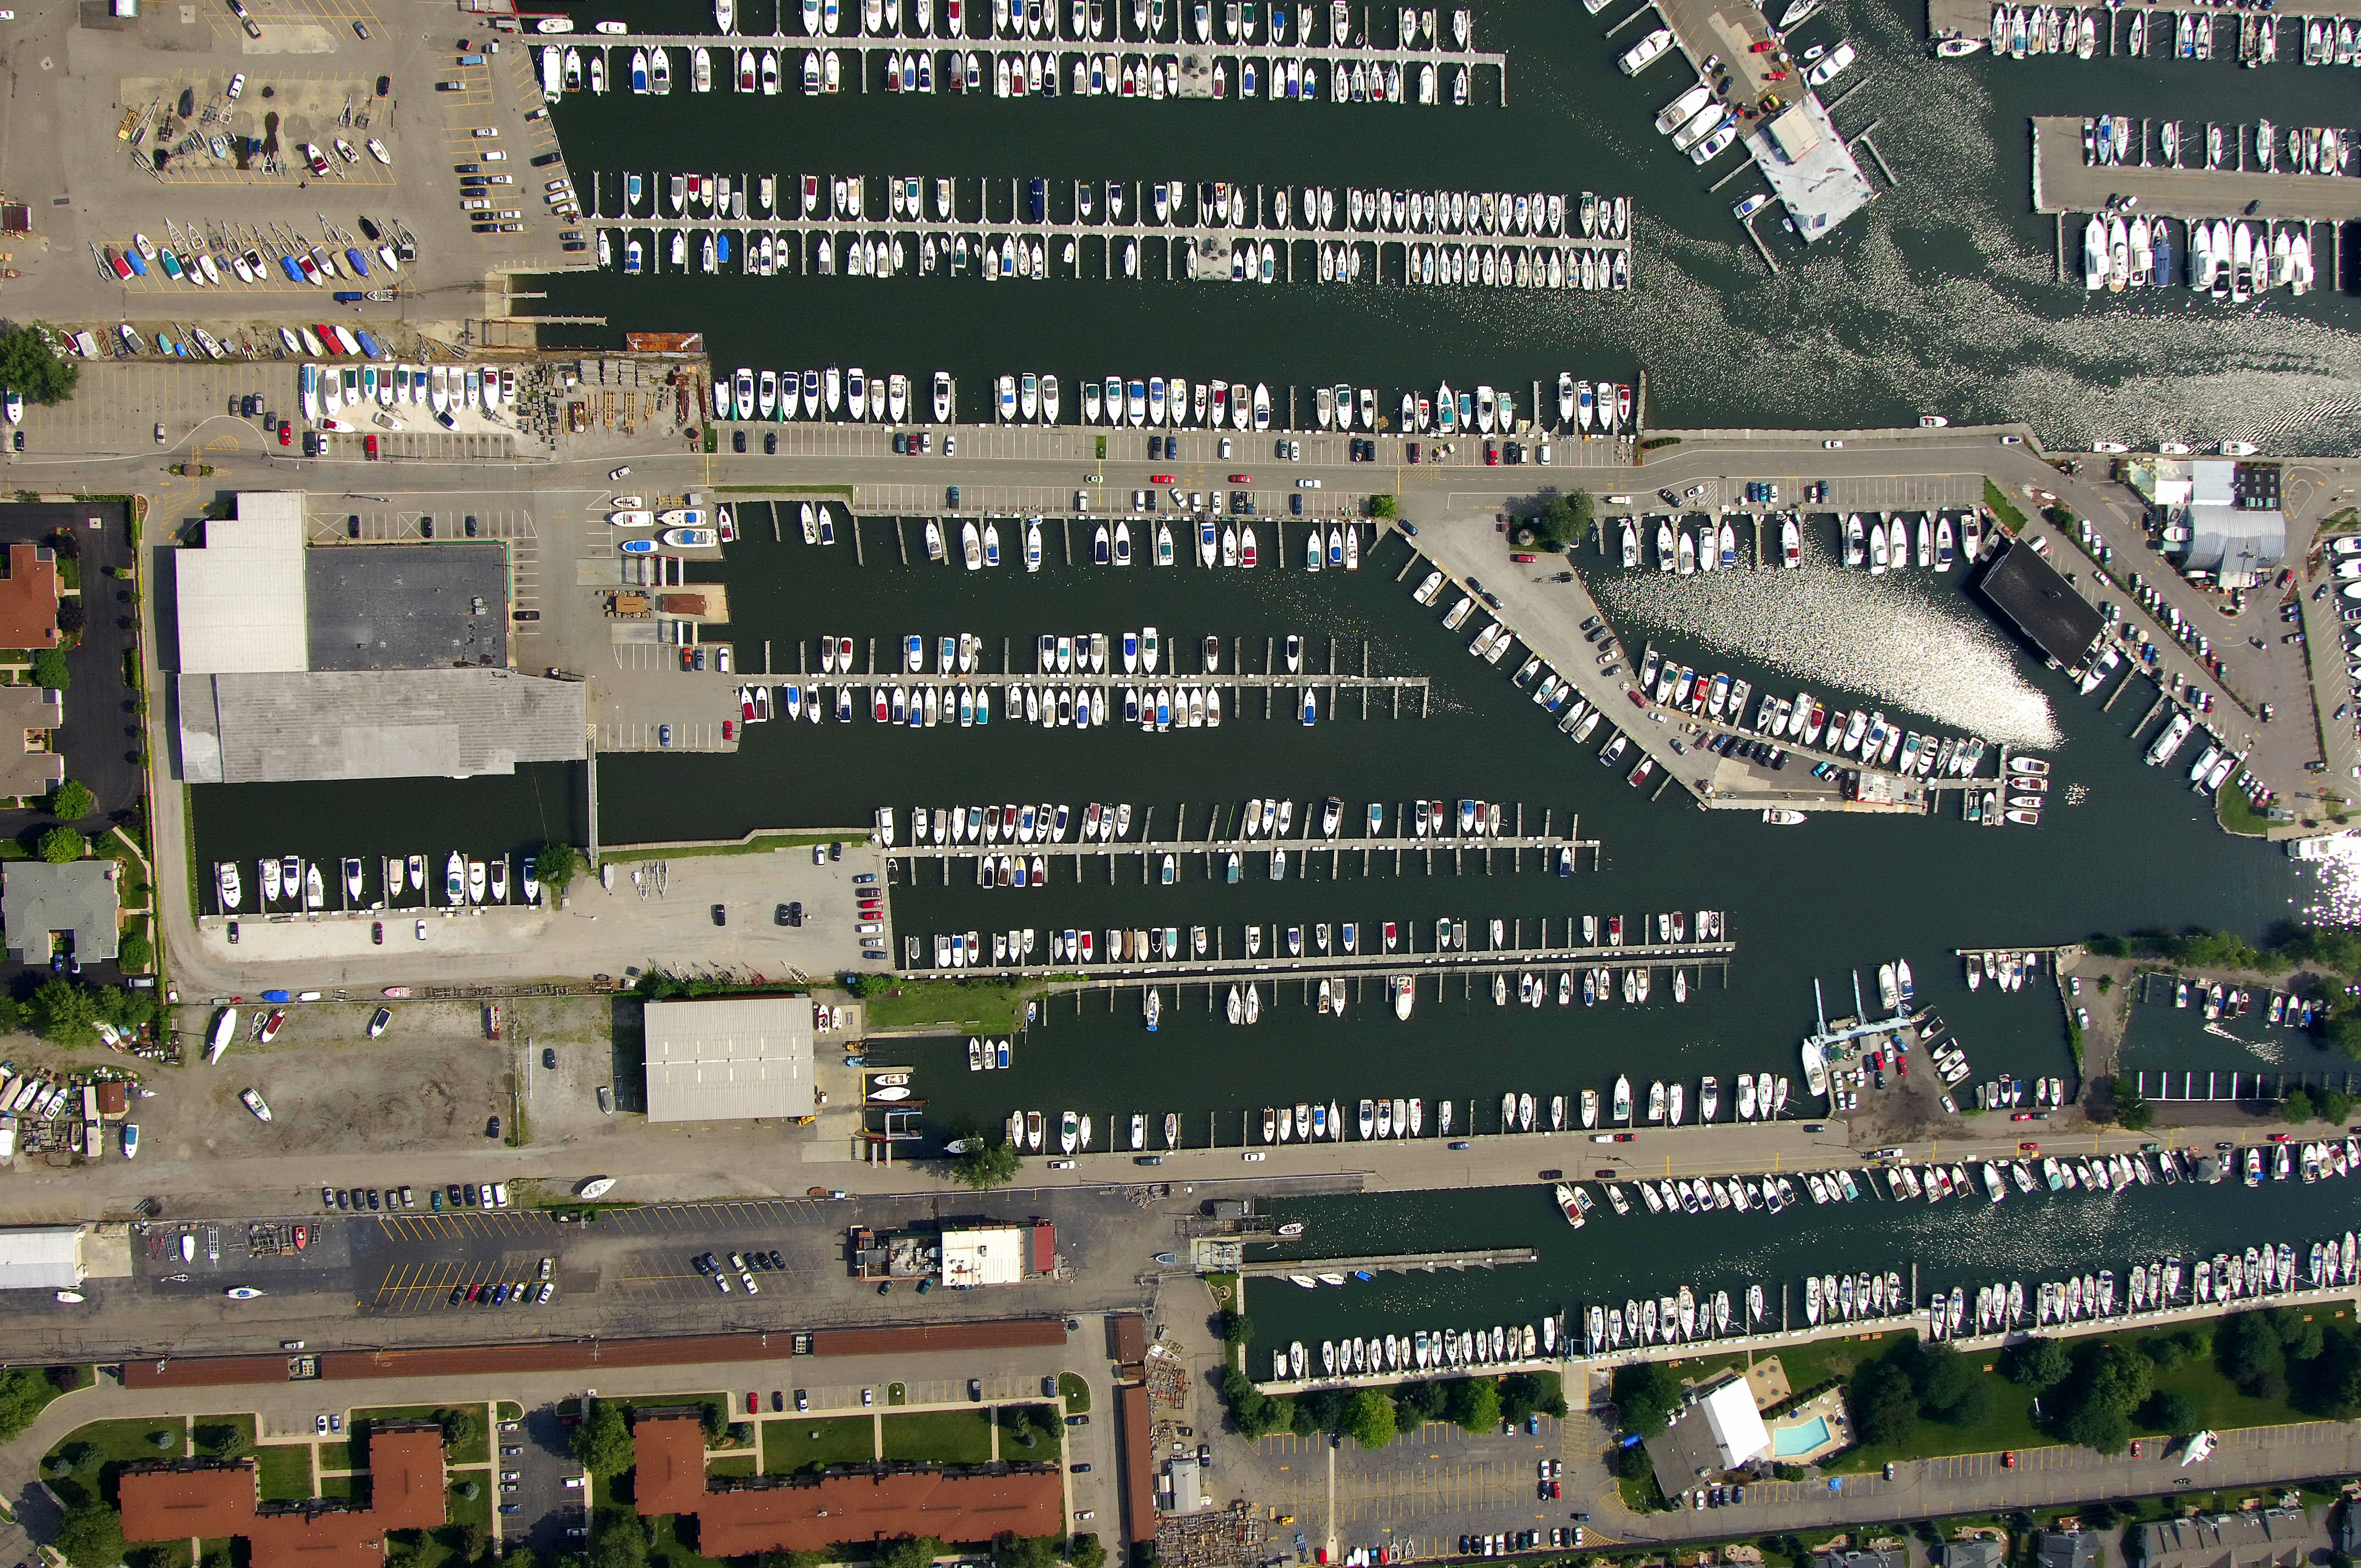 Emerald city harbor in st clair shores mi united states for Emerald city nickname